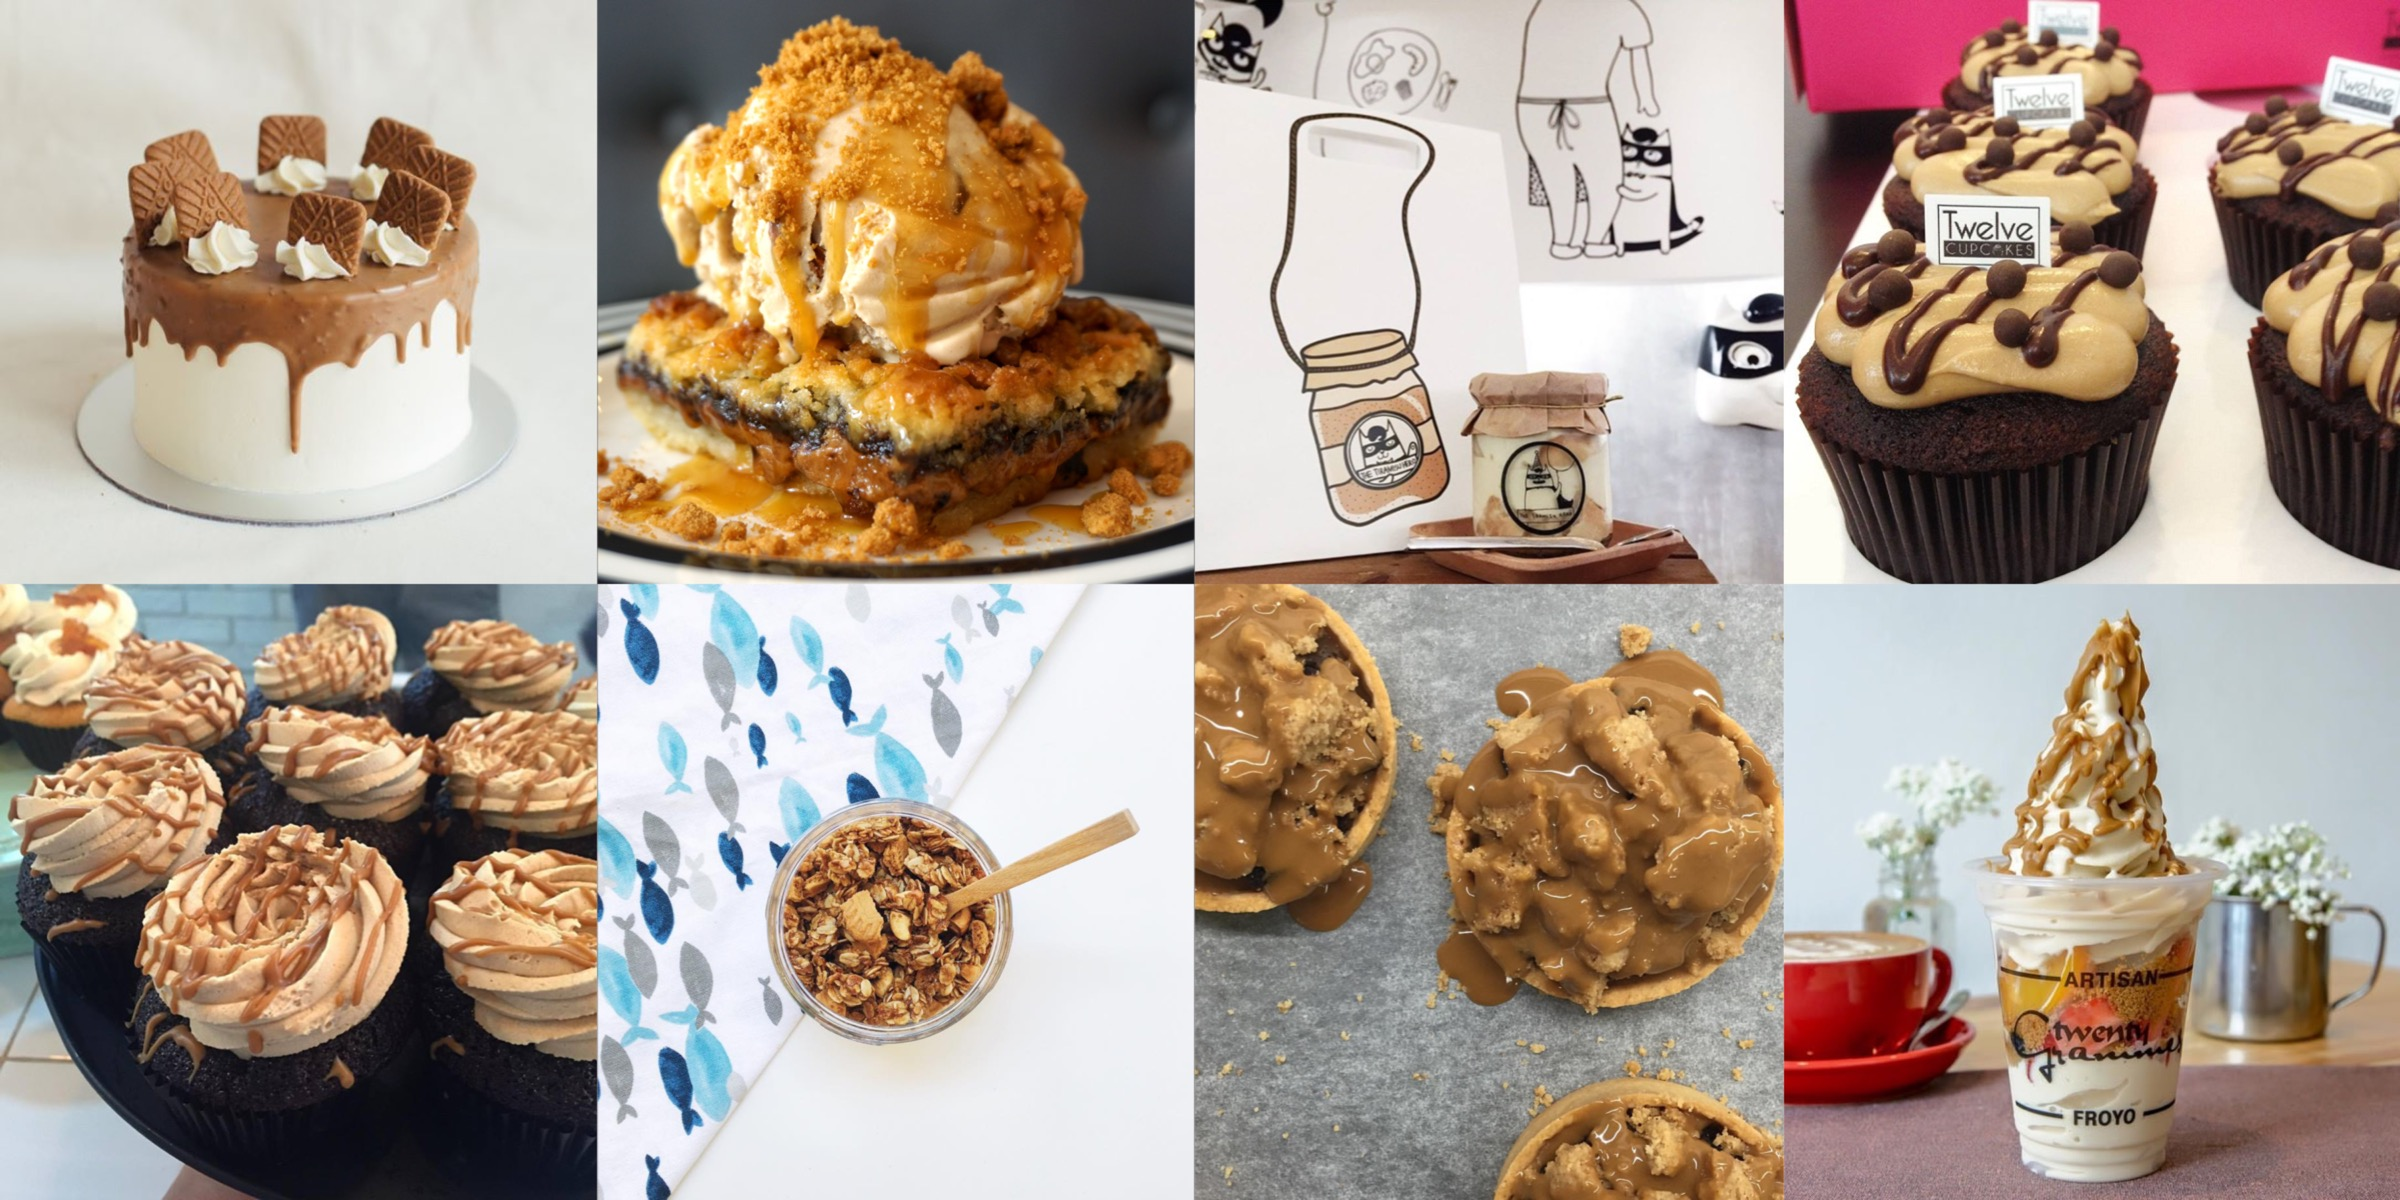 Clockwise from left to right, top to bottom: Edith Patisserie, Cake Spade, The Tiramisu Hero, Twelve Cupcakes, Twenty Grammes, Bloomsbury Bakers, Better Butter, Fluff Bakery. Photo credits to the respective establishments.